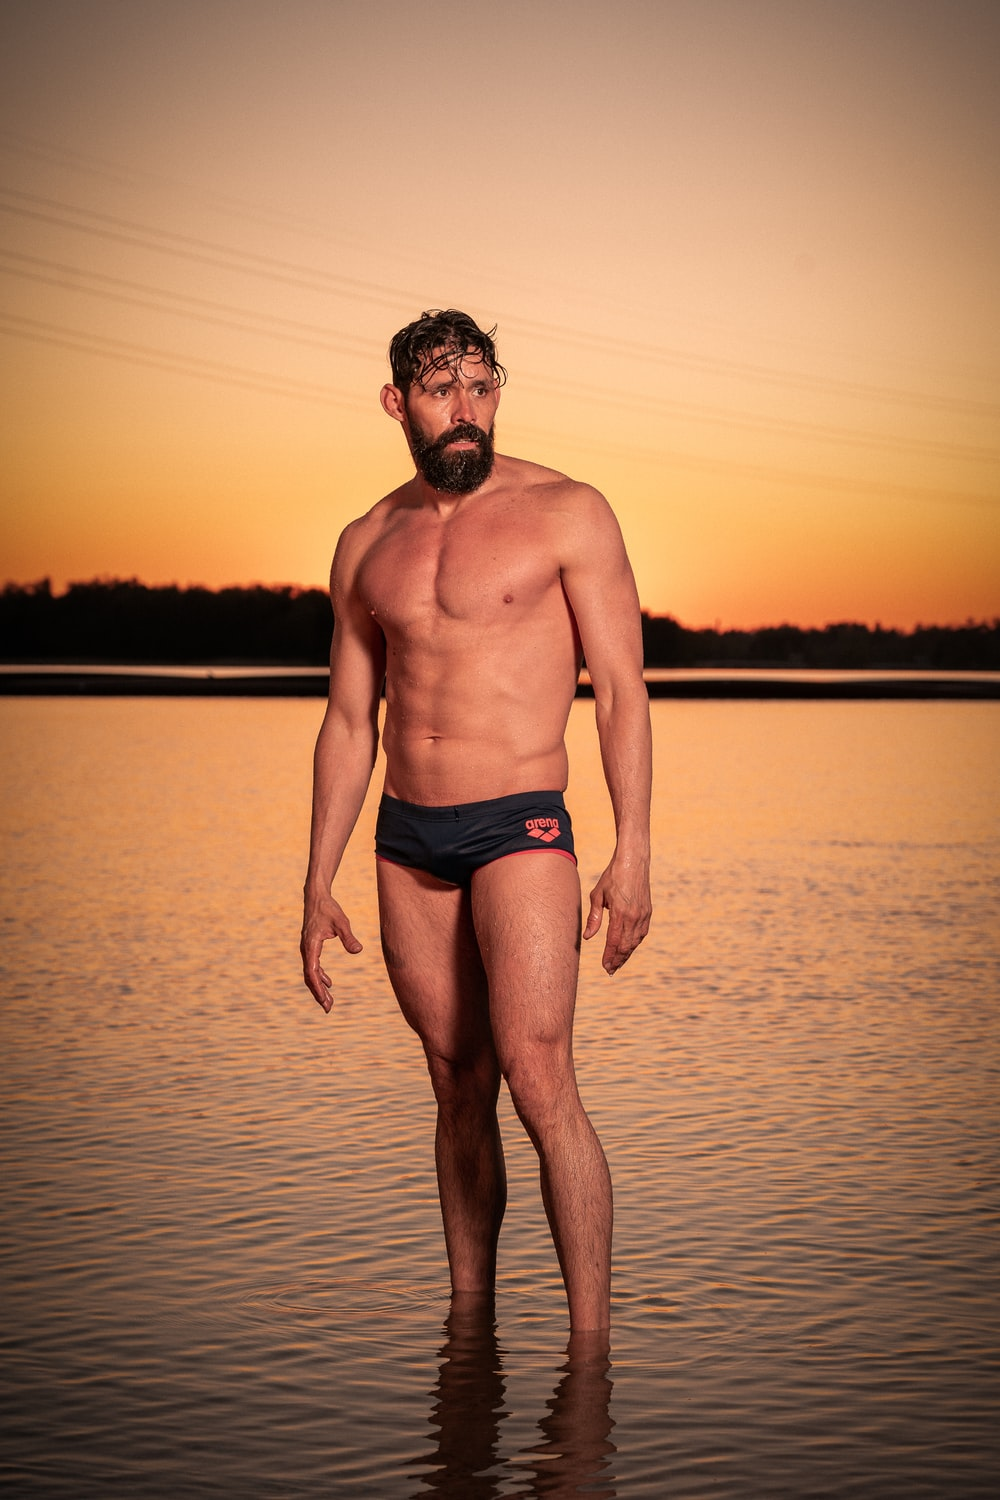 man in blue brief standing on water during sunset